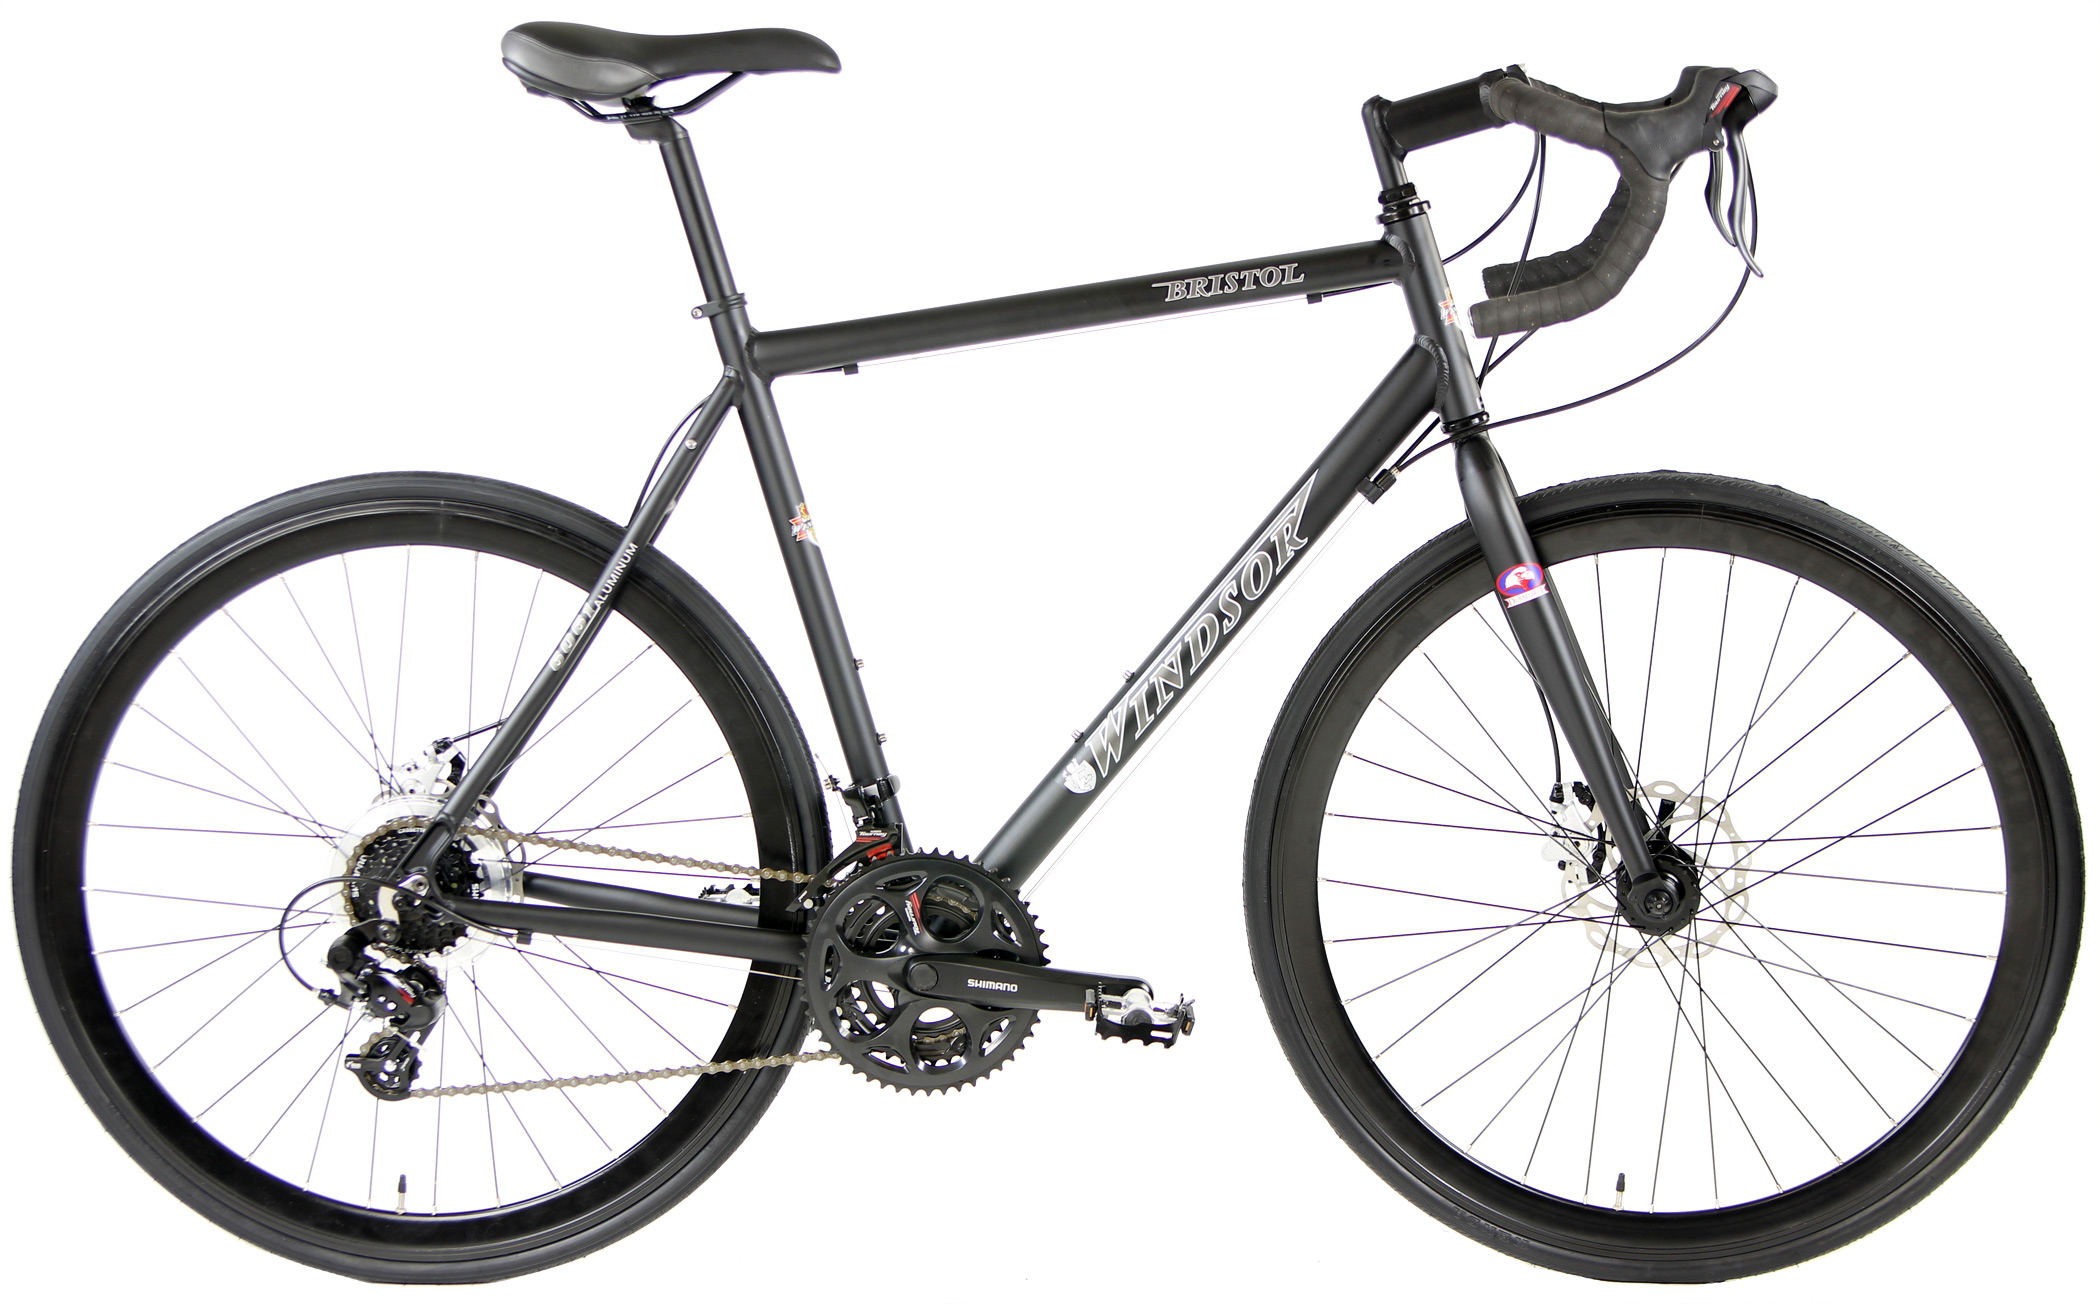 BRISTOL 3.0 DISC - LIGHTWEIGHT ALUMINUM ROAD BIKE w/ DISC BRAKES